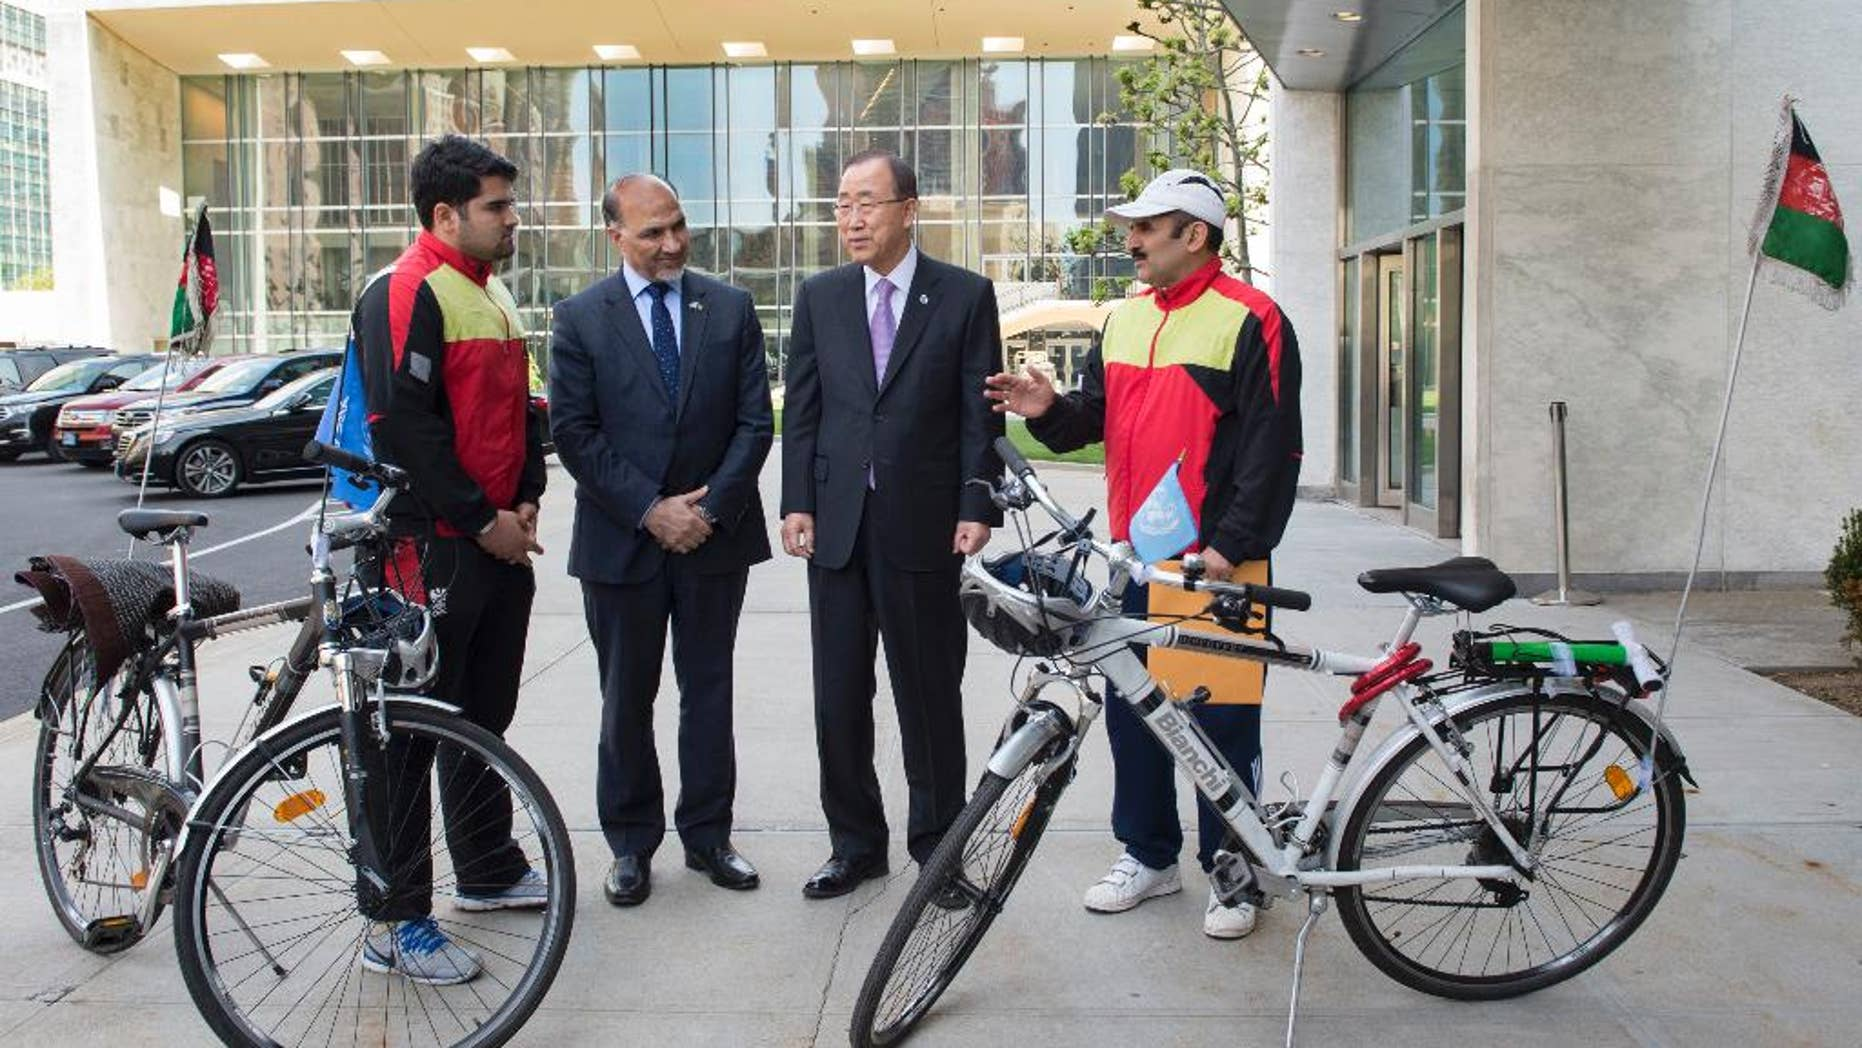 In this photo provided by the United Nations, United Nations Secretary General Ban Ki-moon, center-right, meets with Nader Shah Nangarhari, right, and his son Firoz Khan, left, on the grounds of United Nations headquarters, Friday, May 20, 2016. The father and son team are on a round-the-world trip to promote peace. At center-left is Afghan ambassador to the United Nations, Mahmoud Saikal. (Eskinder Debebe/The United Nations via AP)